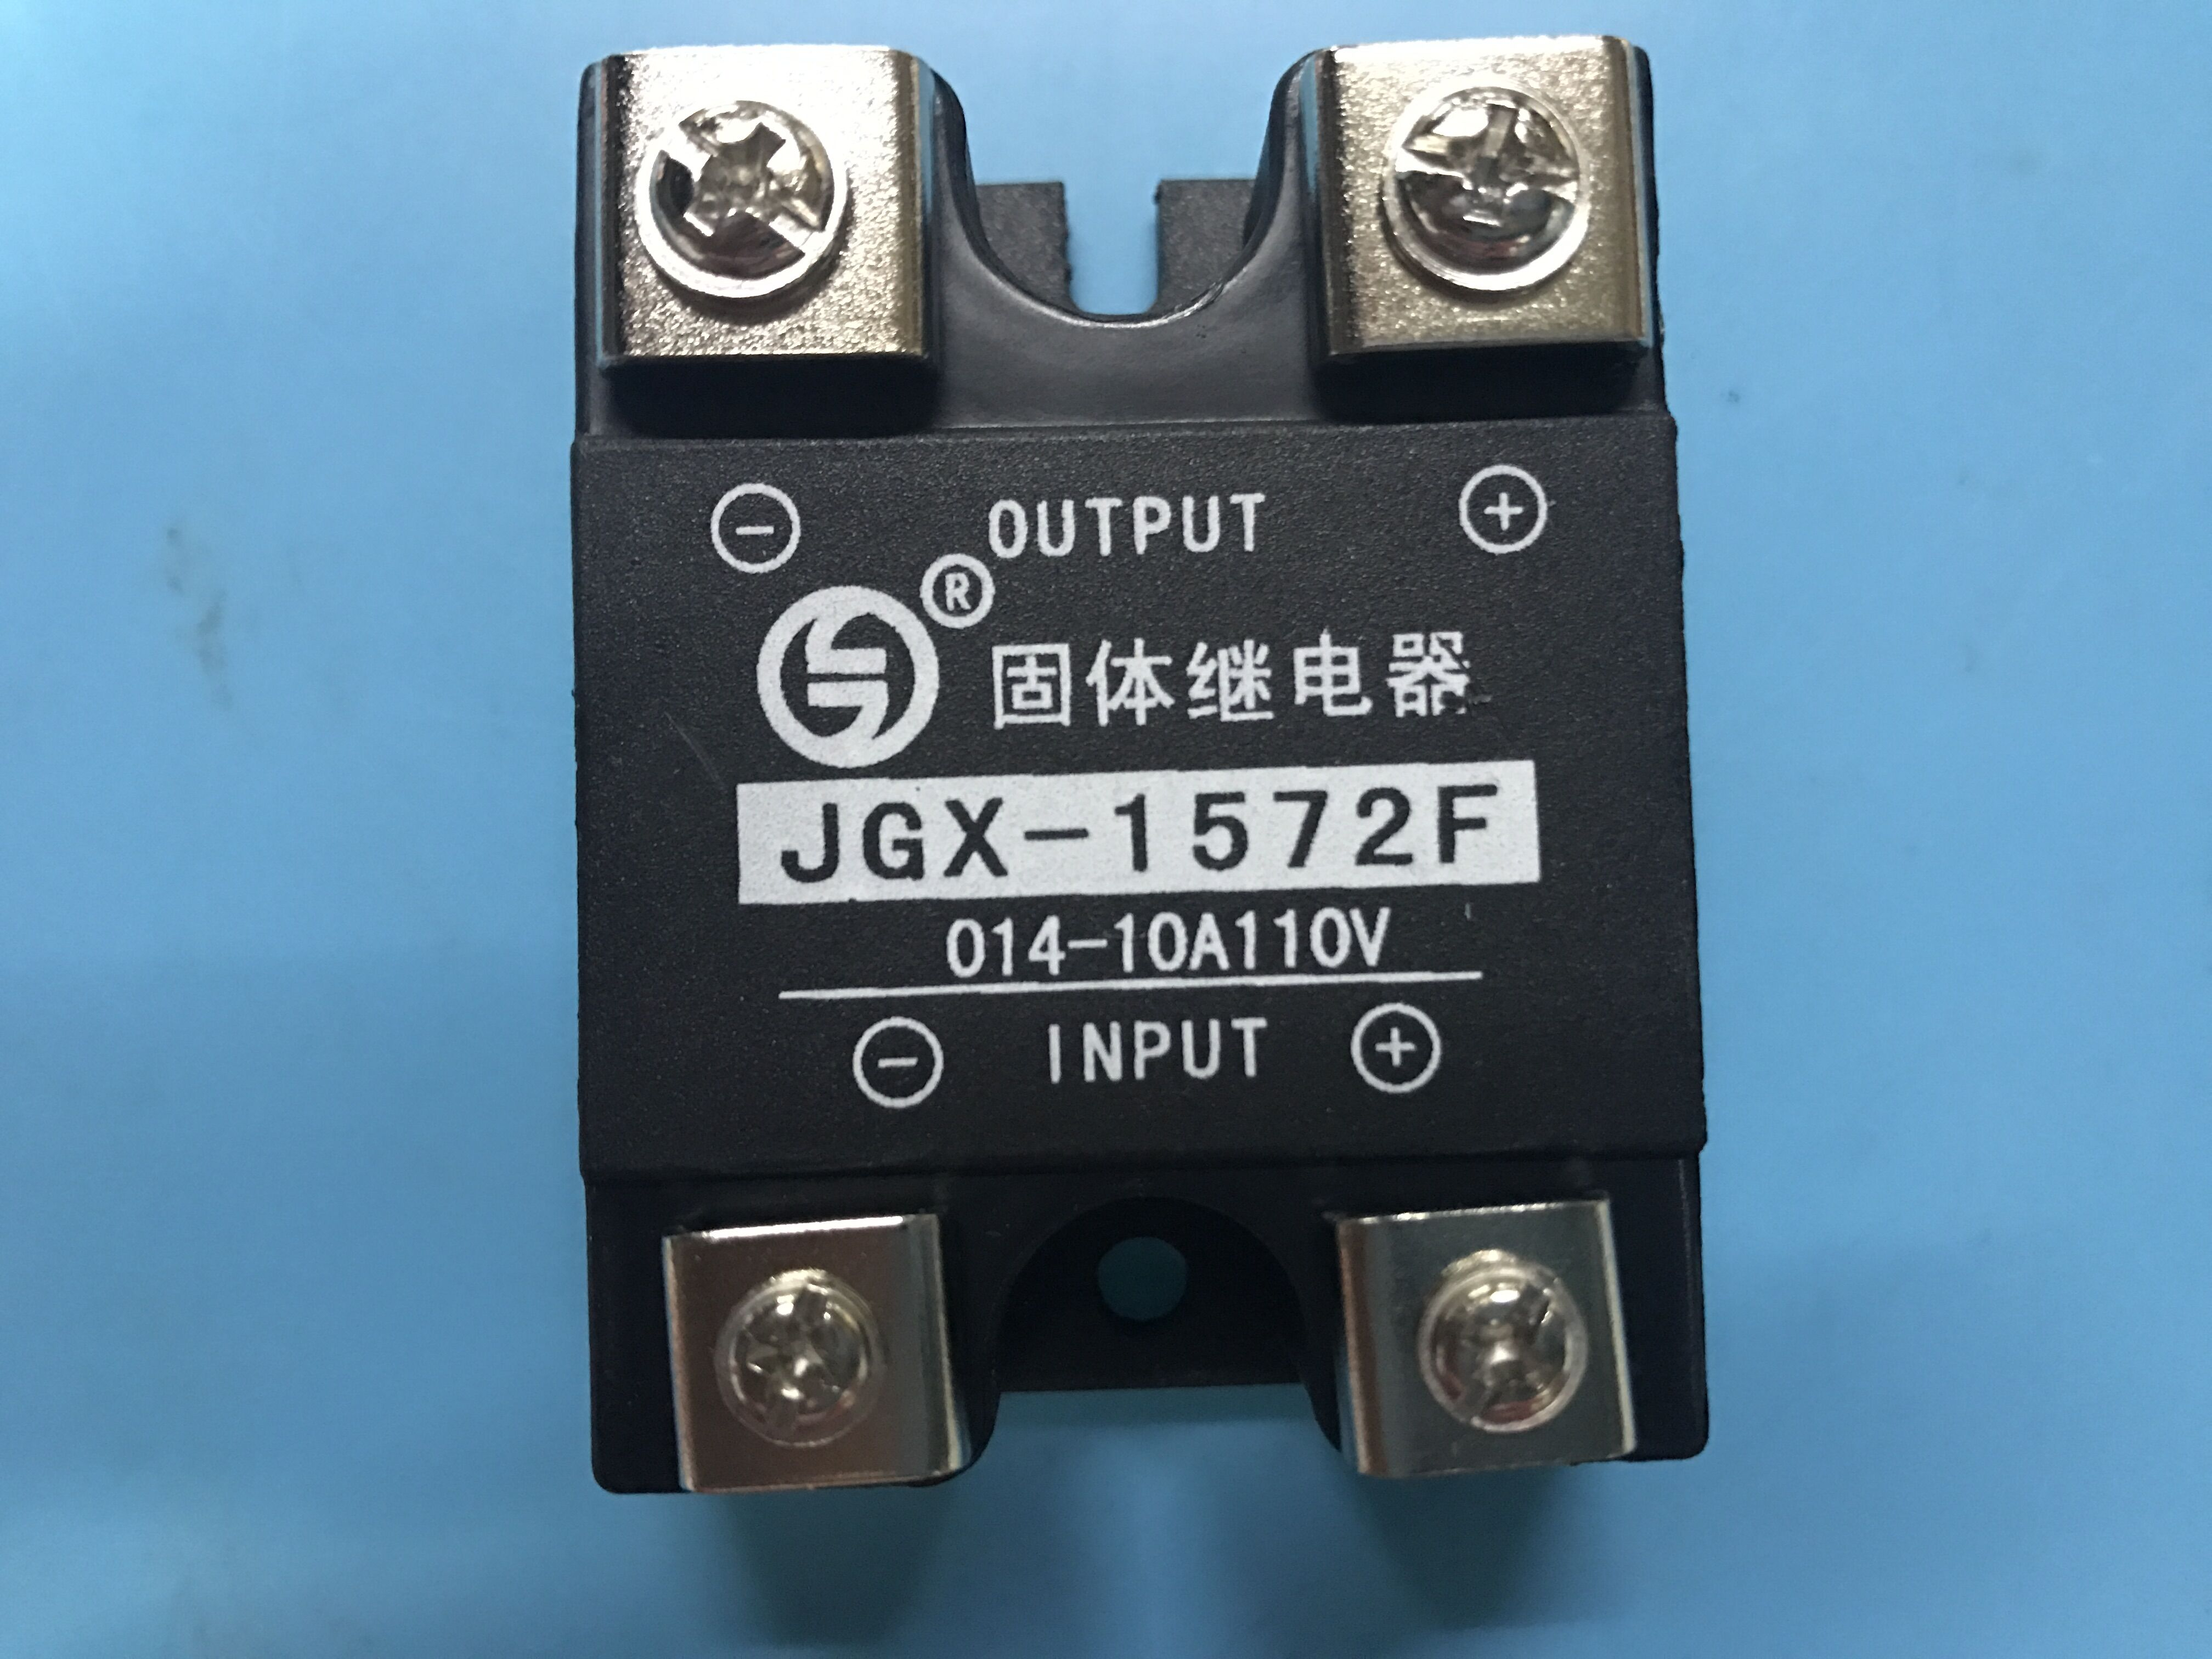 Genuine national crown solid state relay SSR JGX-1572F 014